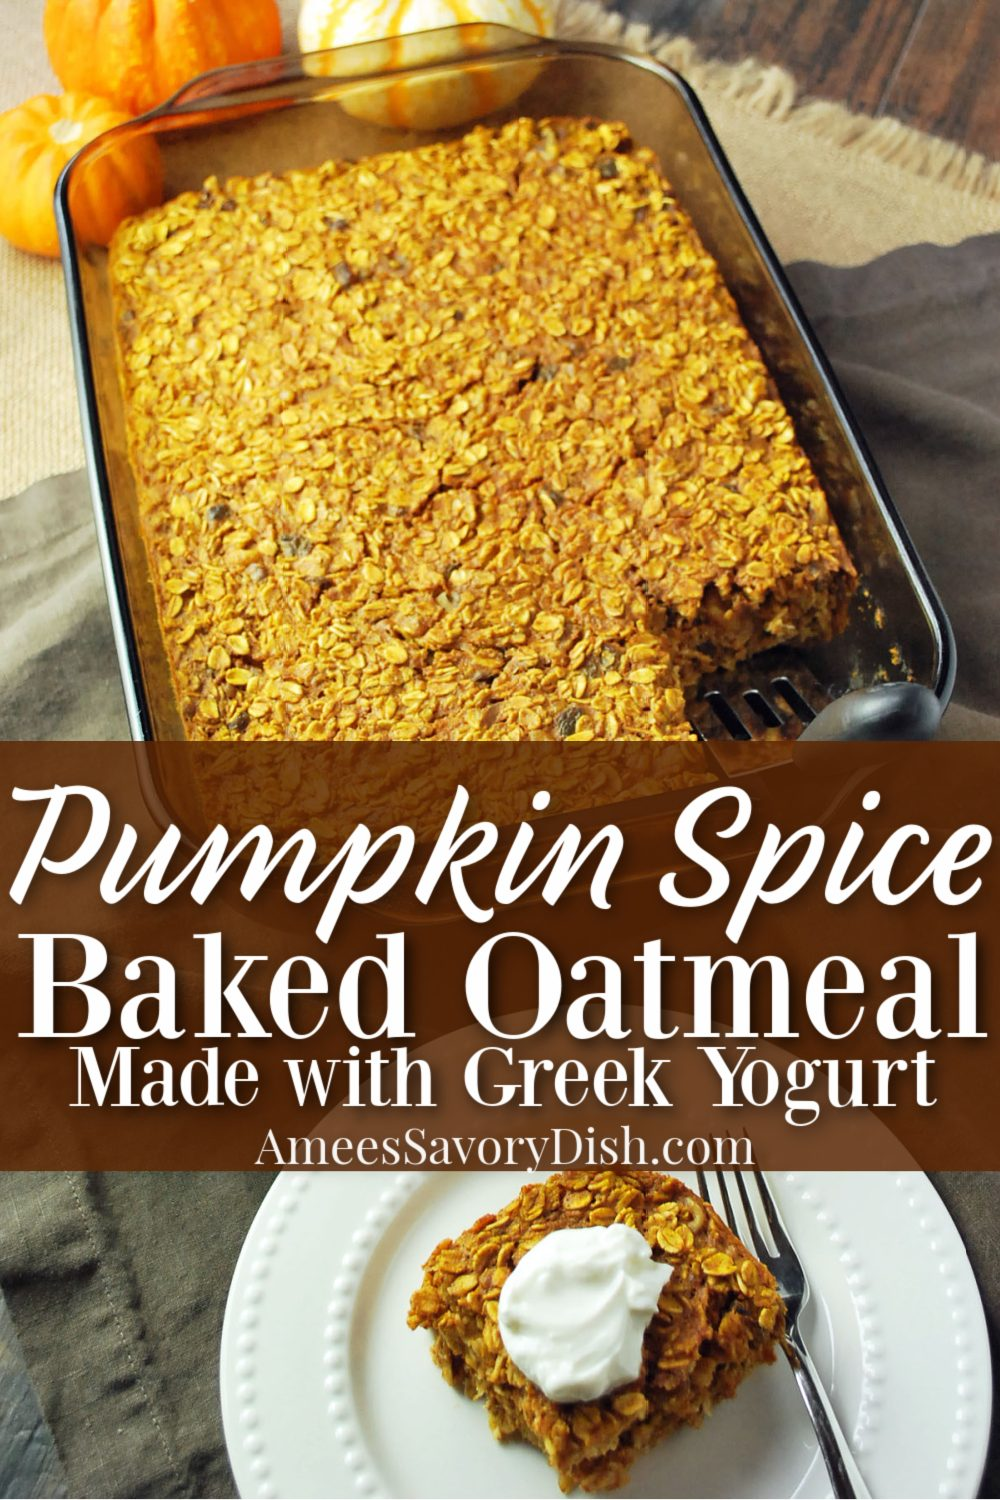 Delicious and Healthy Pumpkin Spice Baked Oatmeal via @Ameessavorydish